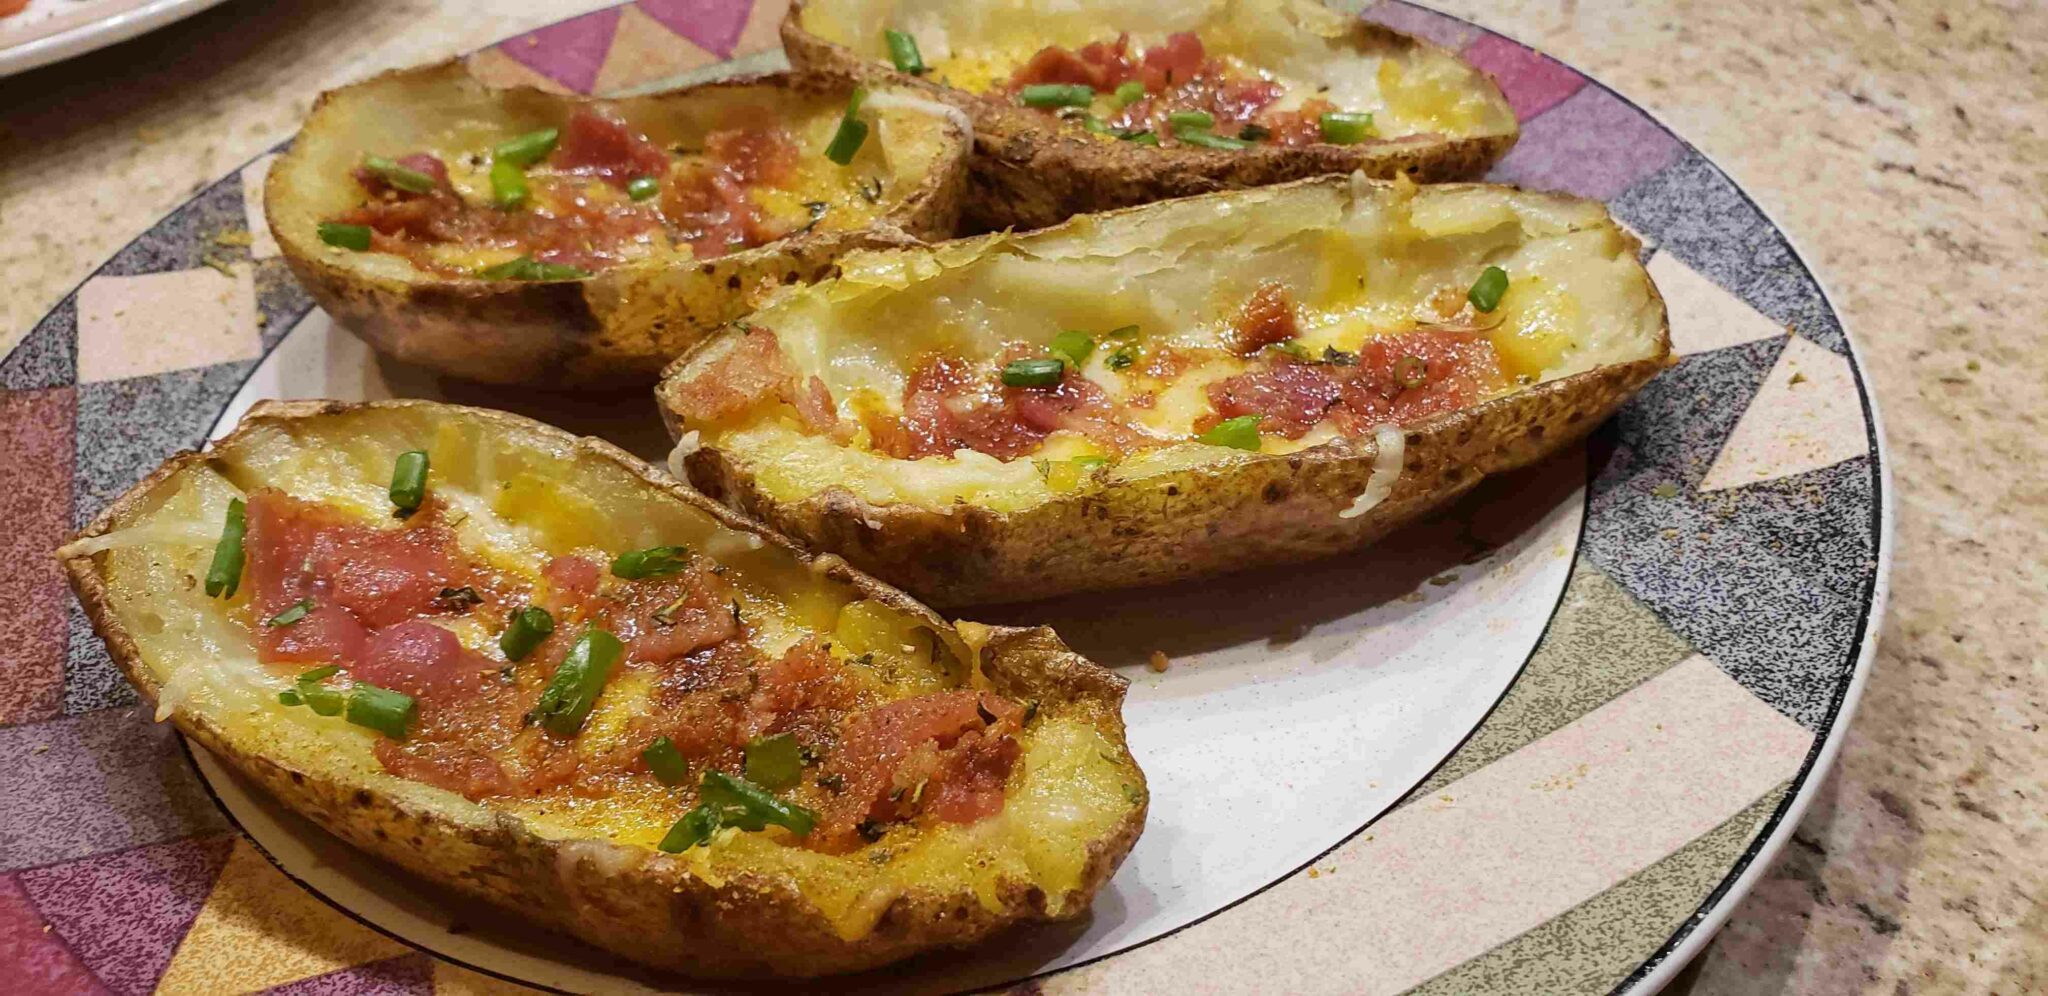 Image of loaded potato skins on plate